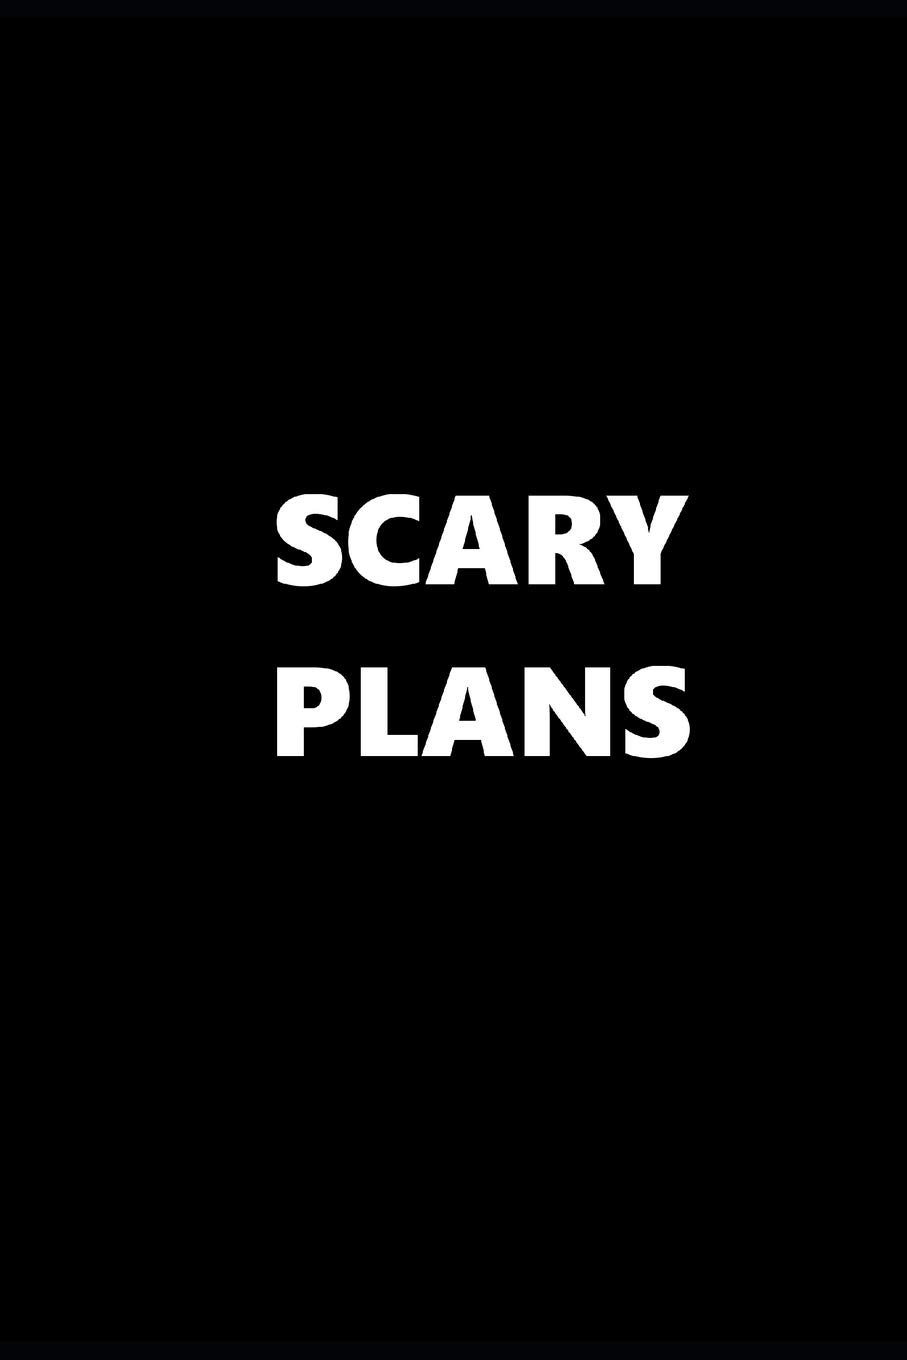 December 2019 Calendar Scary Theme Buy 2019 Daily Planner Funny Theme Scary Plans Black White 384